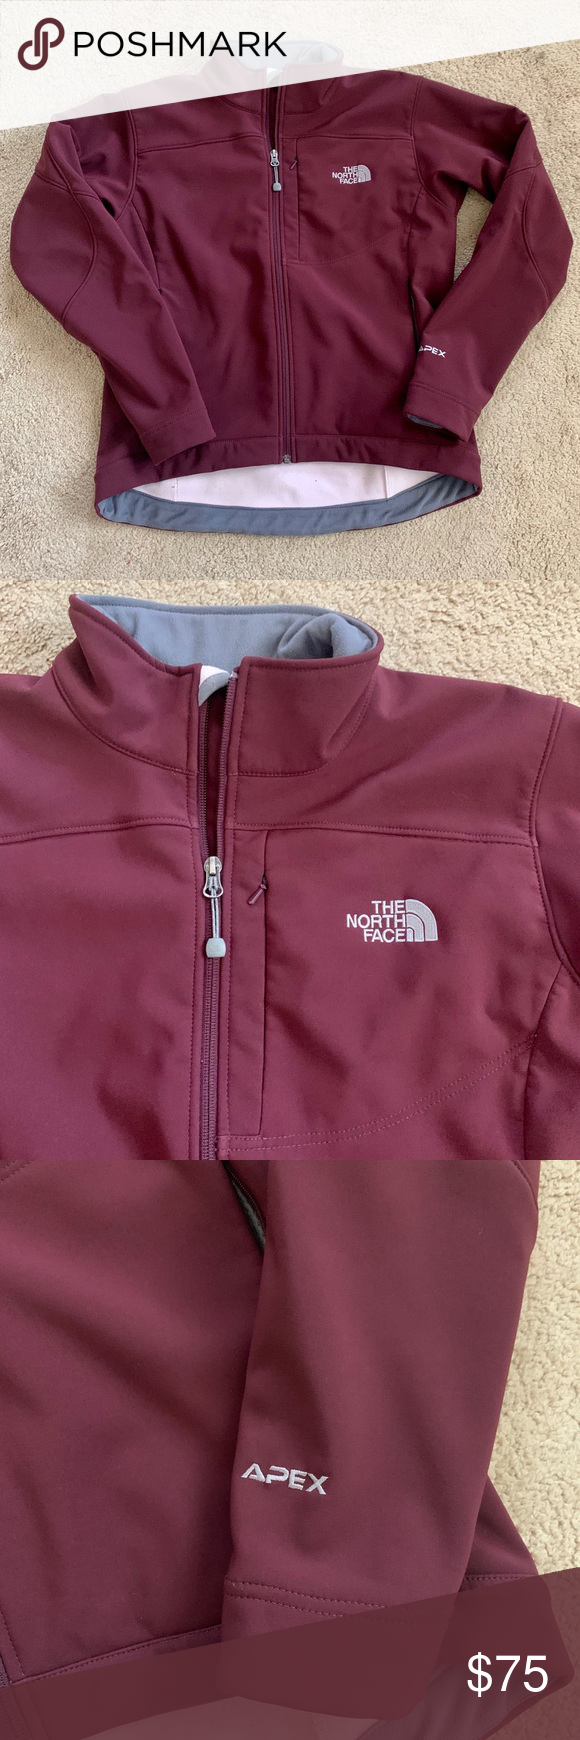 The North Face Maroon Apex Jacket North Face Jacket Clothes Design Jackets [ 1740 x 580 Pixel ]